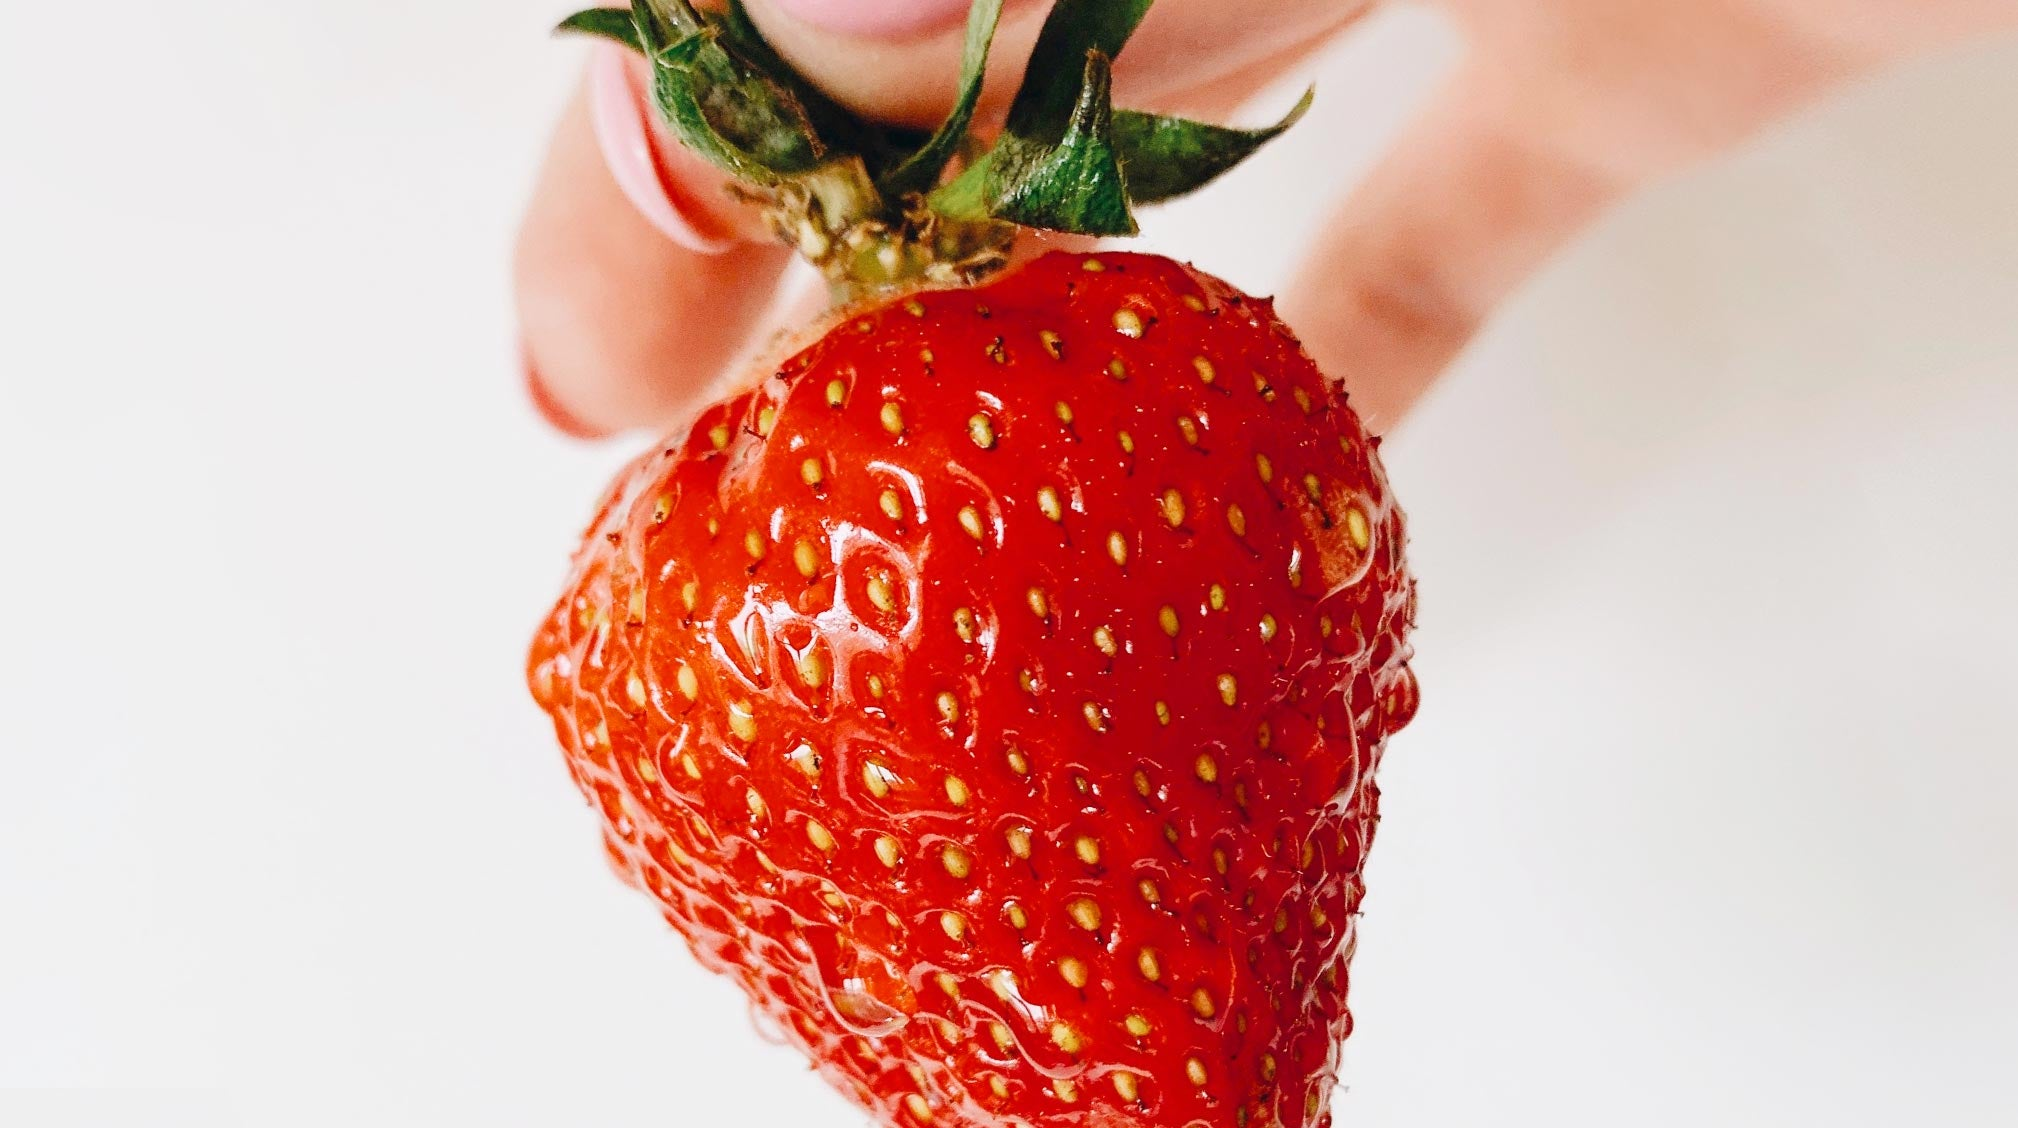 How to Get Rid of Strawberry Legs, According to Dermatologists